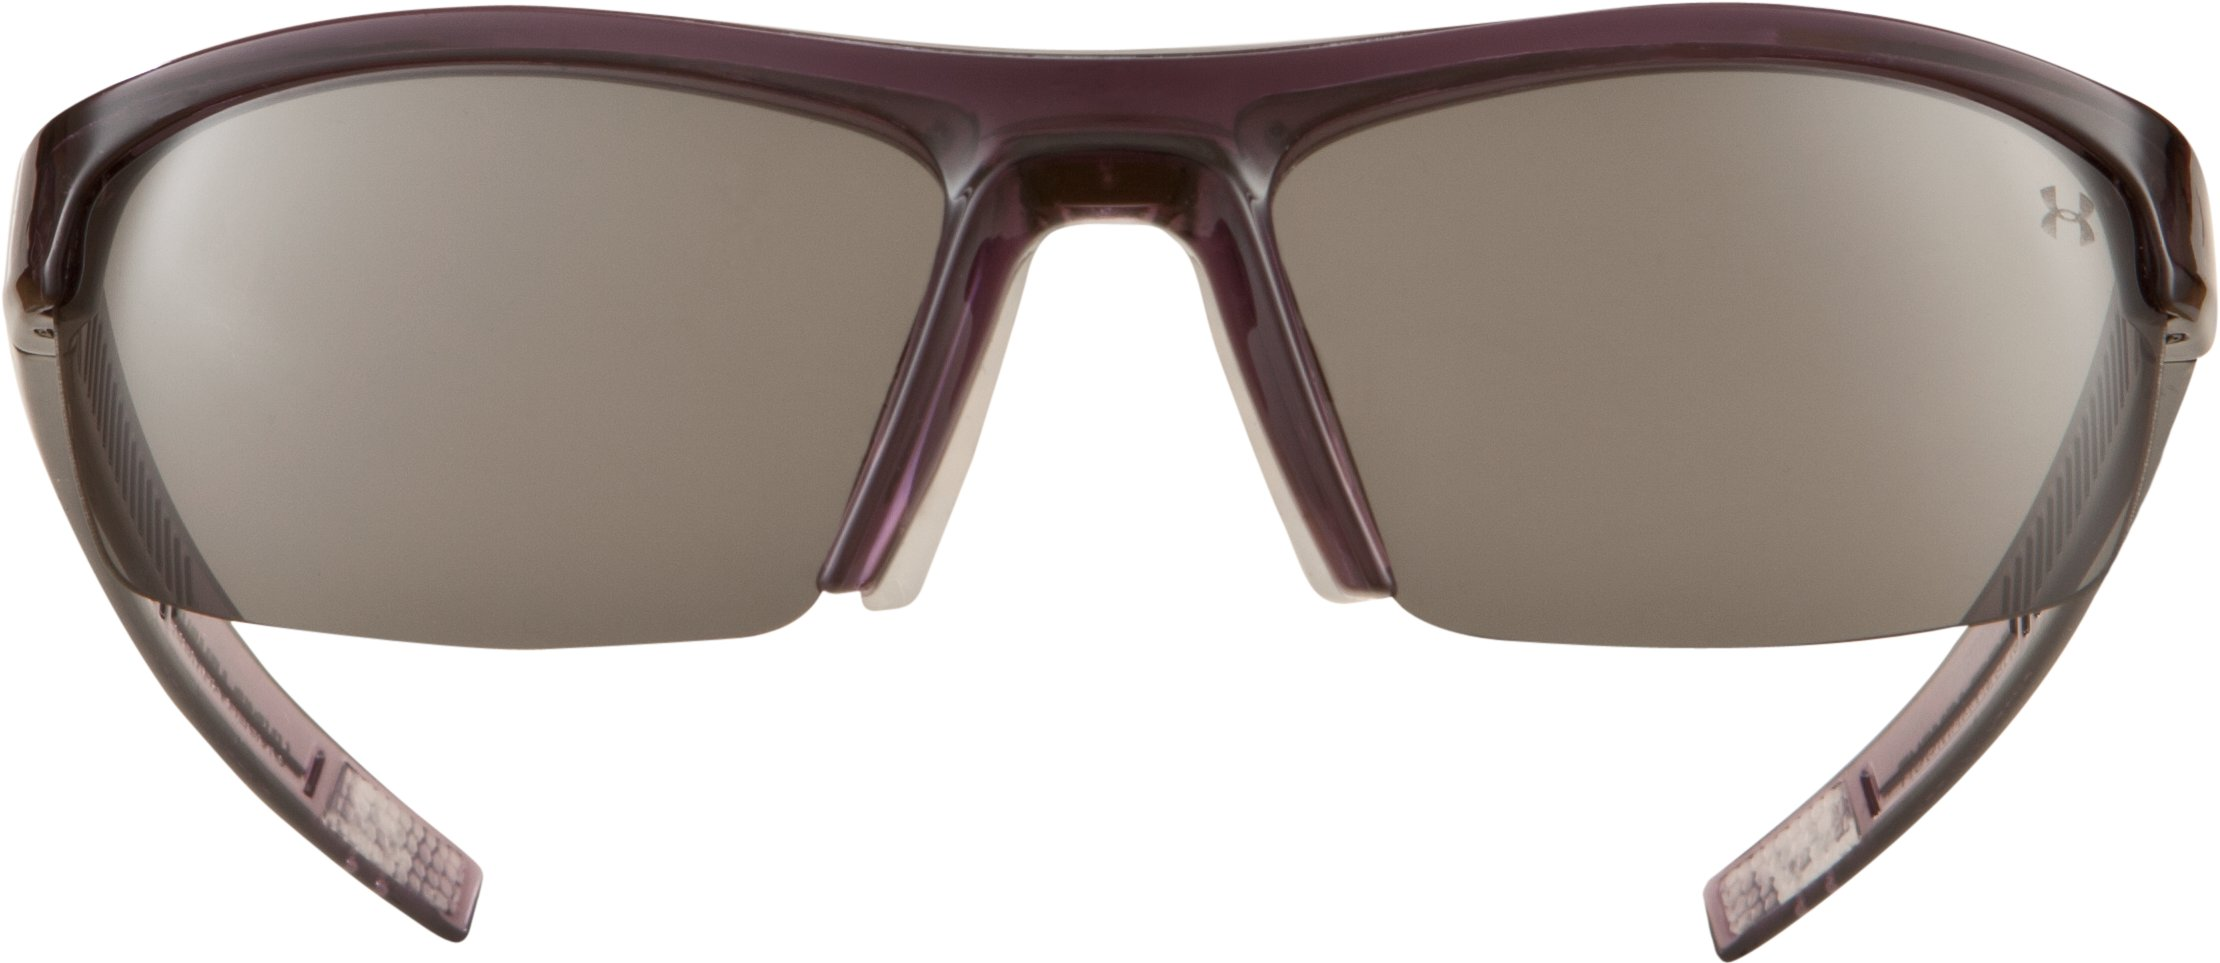 UA Stride Sunglasses, CRYSTAL PLUM